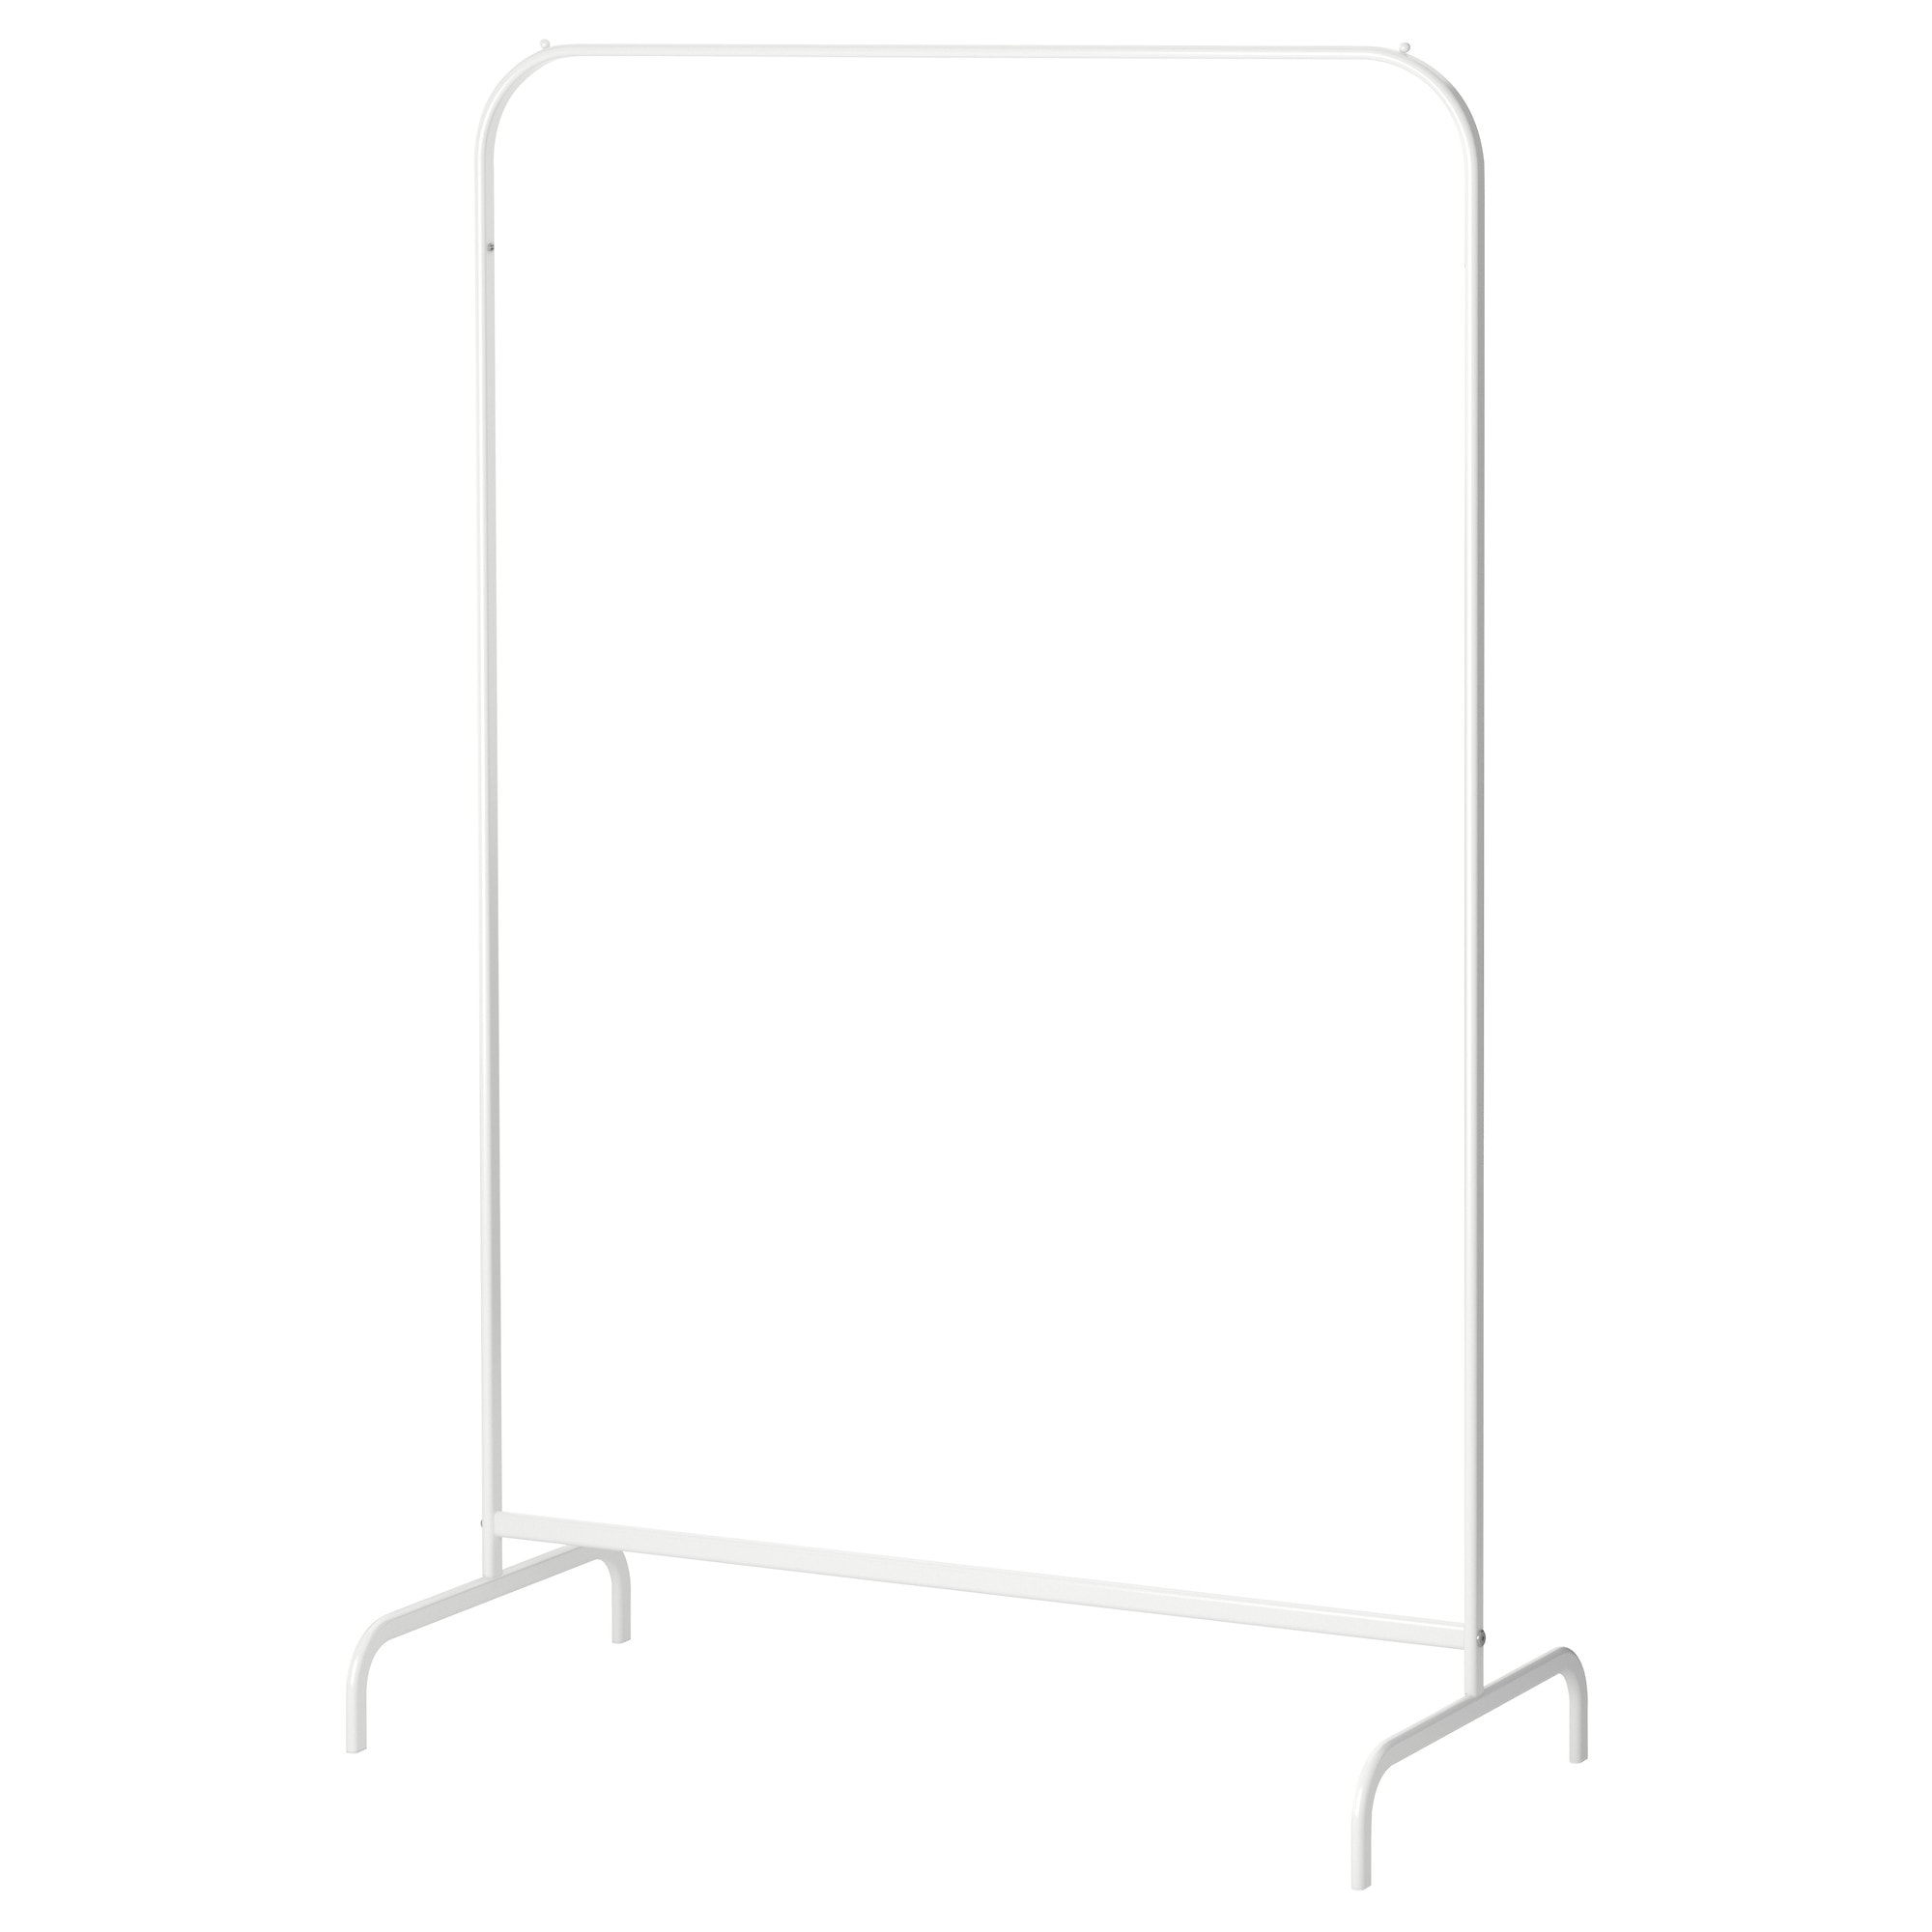 MULIG clothes rack, white Width: 39